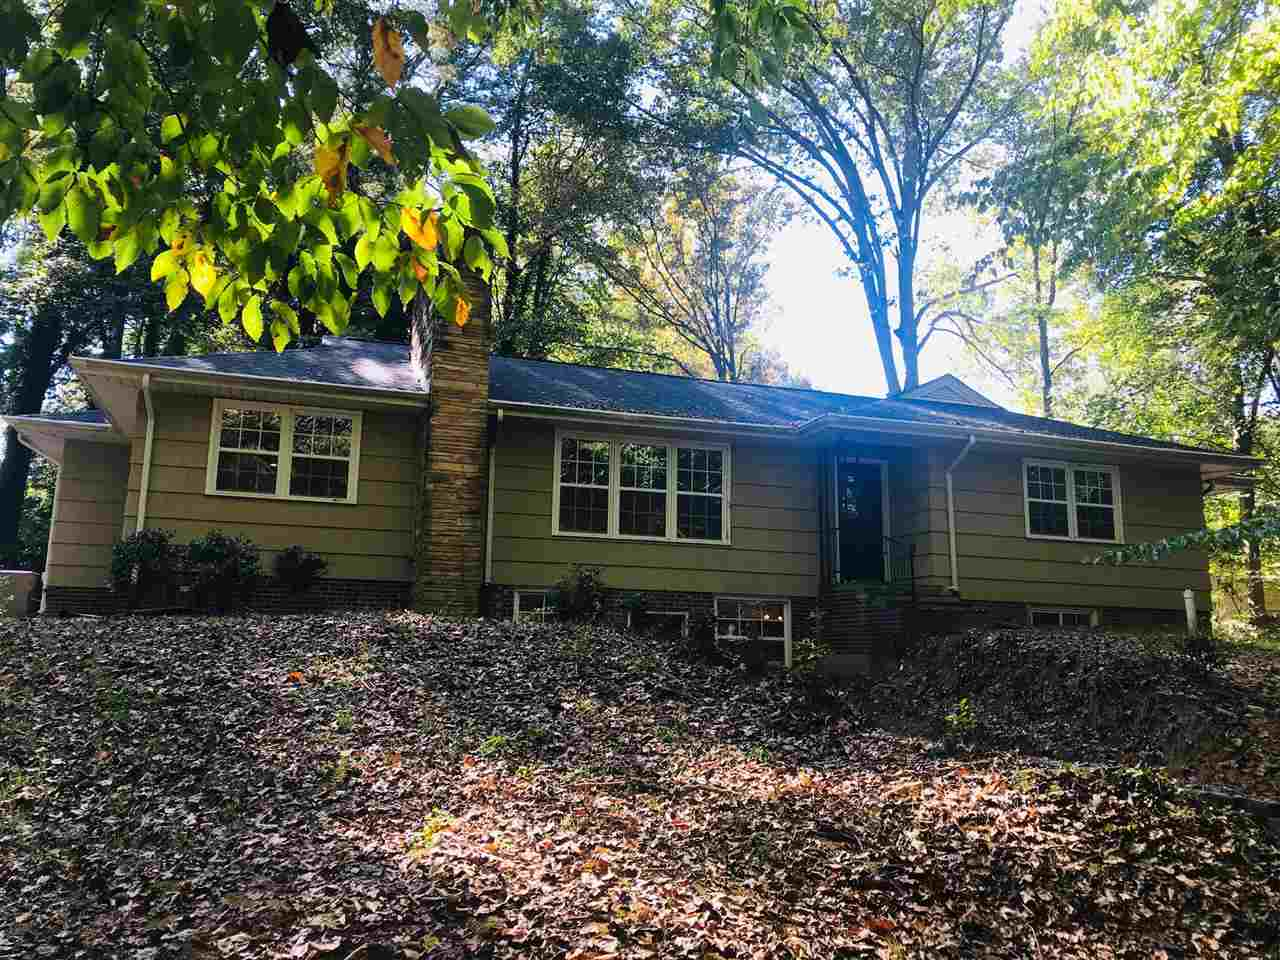 Ready for new owner!  Lots of updates to this 4 bedroom, 3 bath home in Converse Heights.  New roof in October 2019, complete water proof system including French drain around the exterior; interior painted, new flooring in lower level.  All new insulated windows. House sits on a high lot with many hardwood trees.  Owners are motivated to sell.